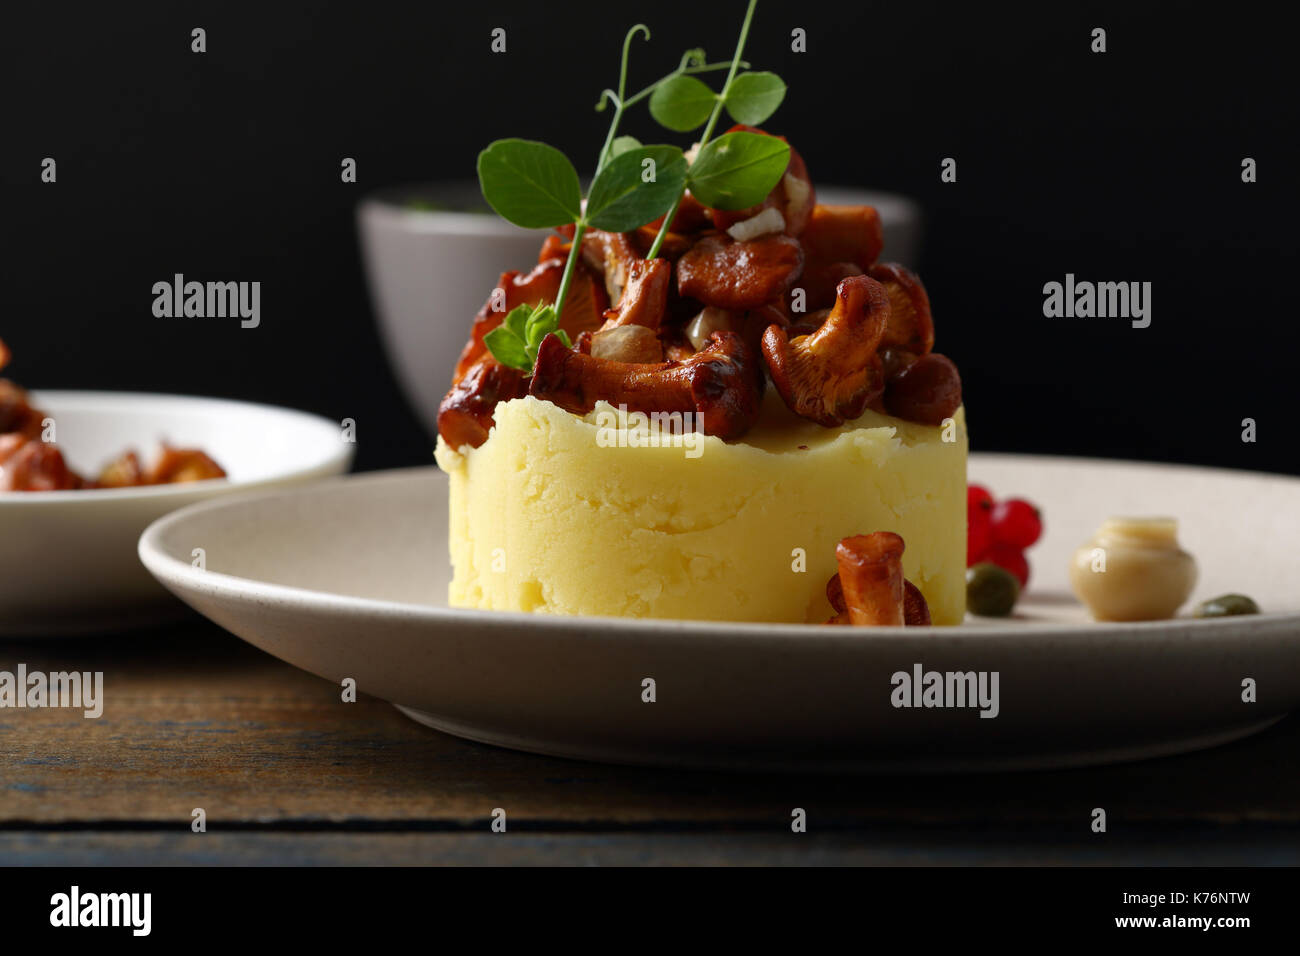 Potato with roasted mushrooms, food closeup - Stock Image